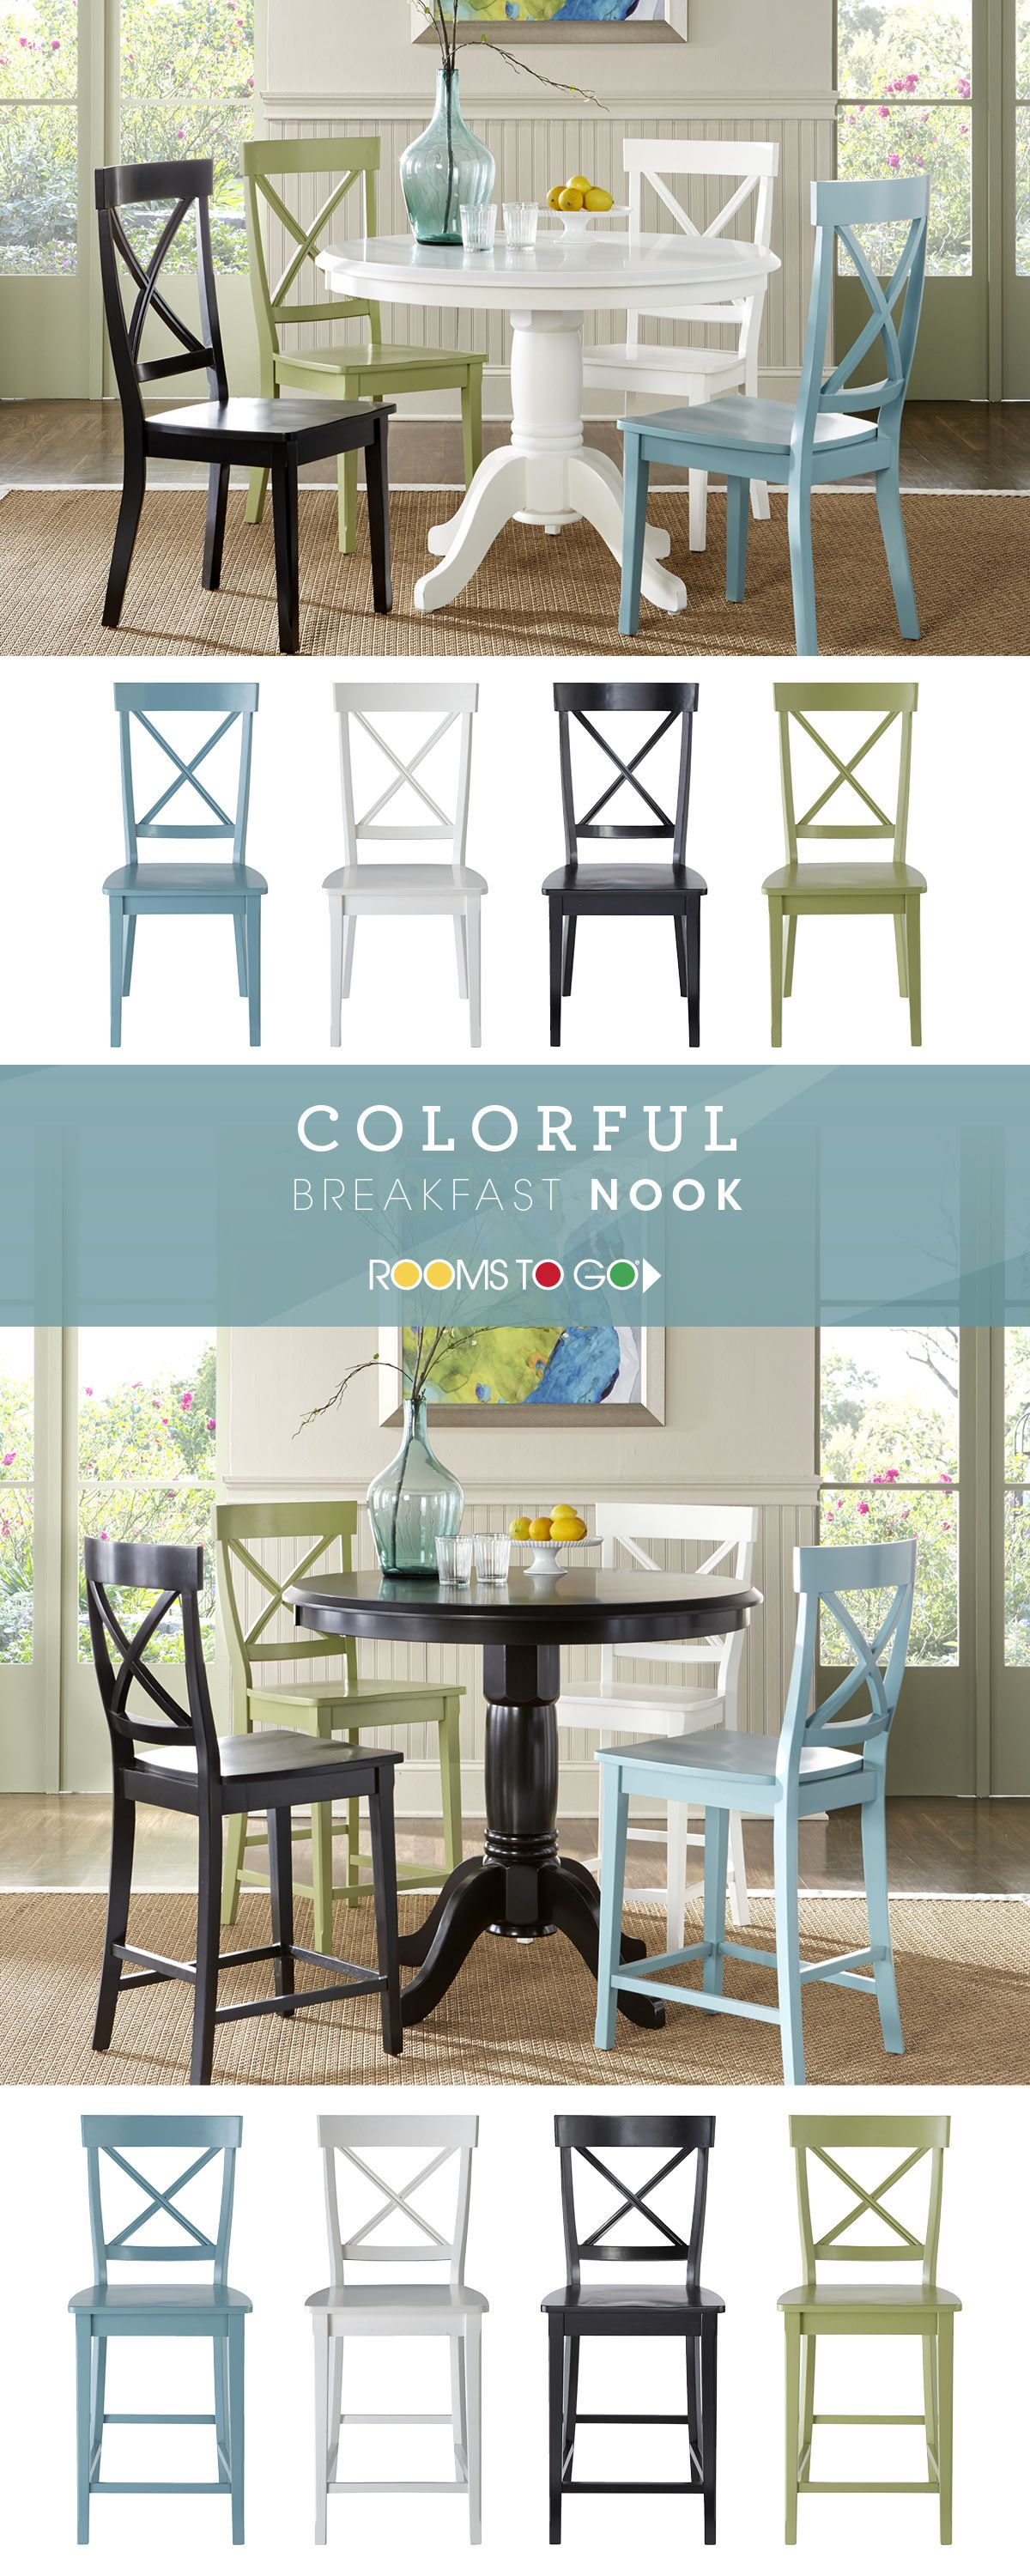 Designing Your Perfect Breakfast Nook With Two Table Heights And Plenty Of Colors To Choose Fro Round Dining Room Dining Room Table Set Round Dining Room Sets